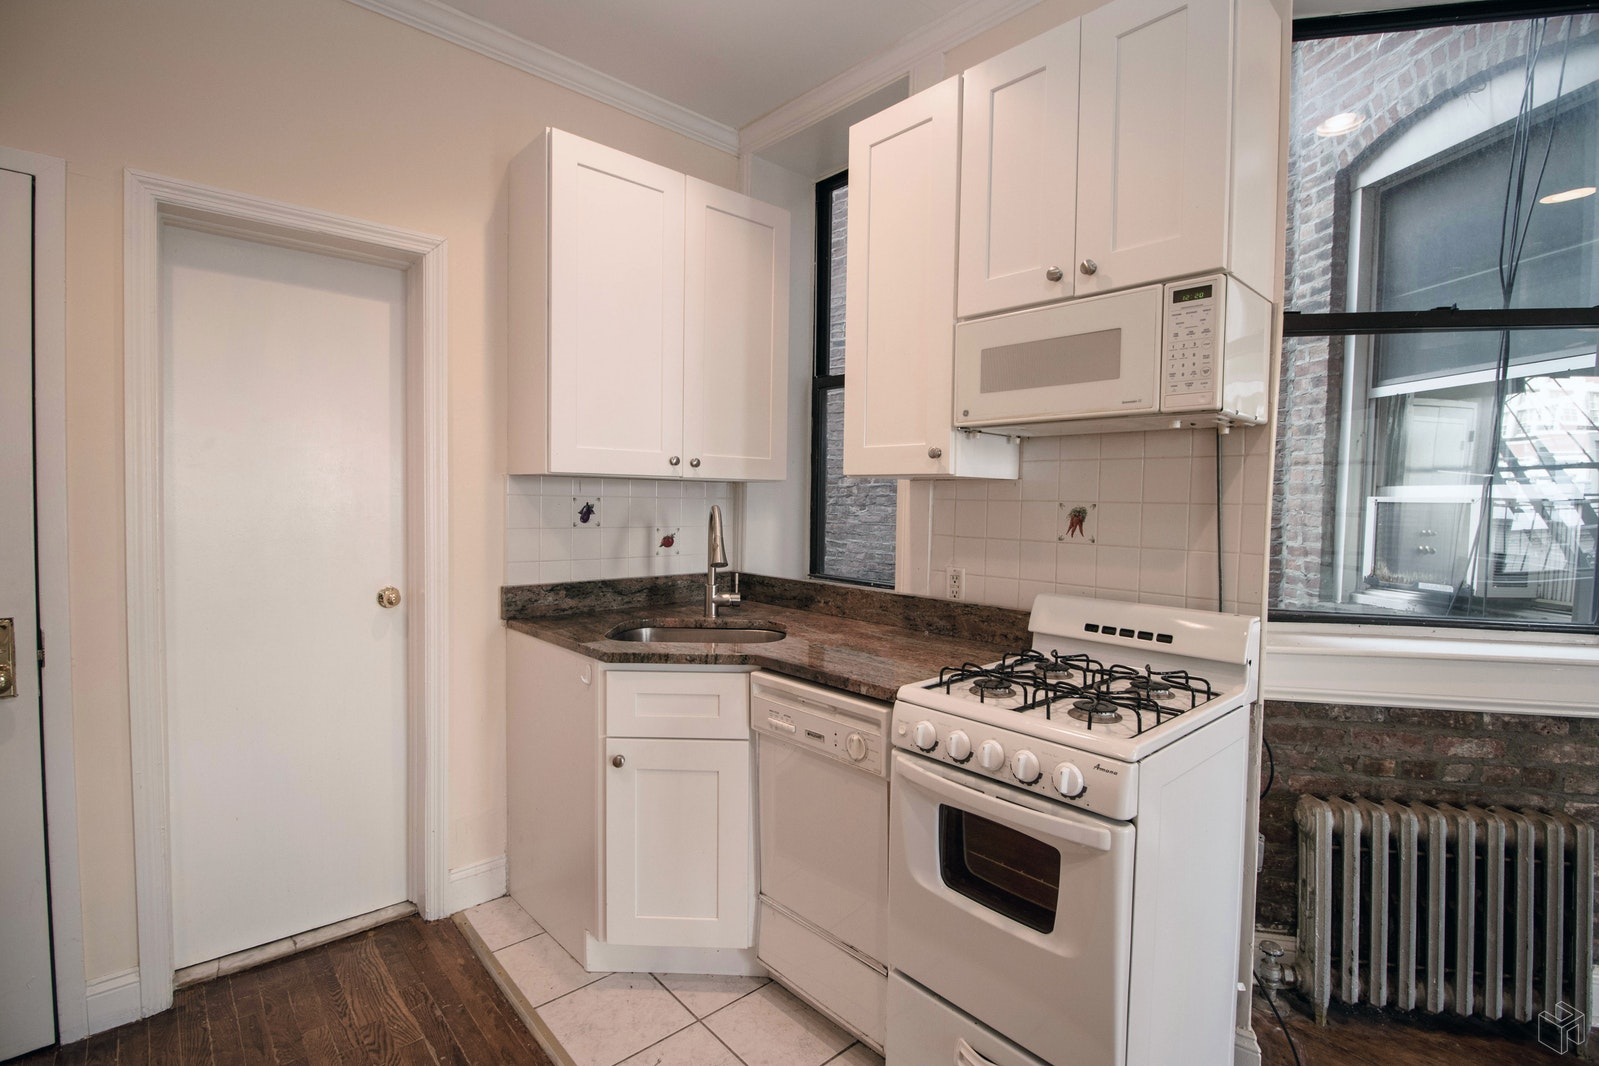 73 East 3rd Street D2, East Village, NYC, 10003, Price Not Disclosed, Rented Property, Halstead Real Estate, Photo 6